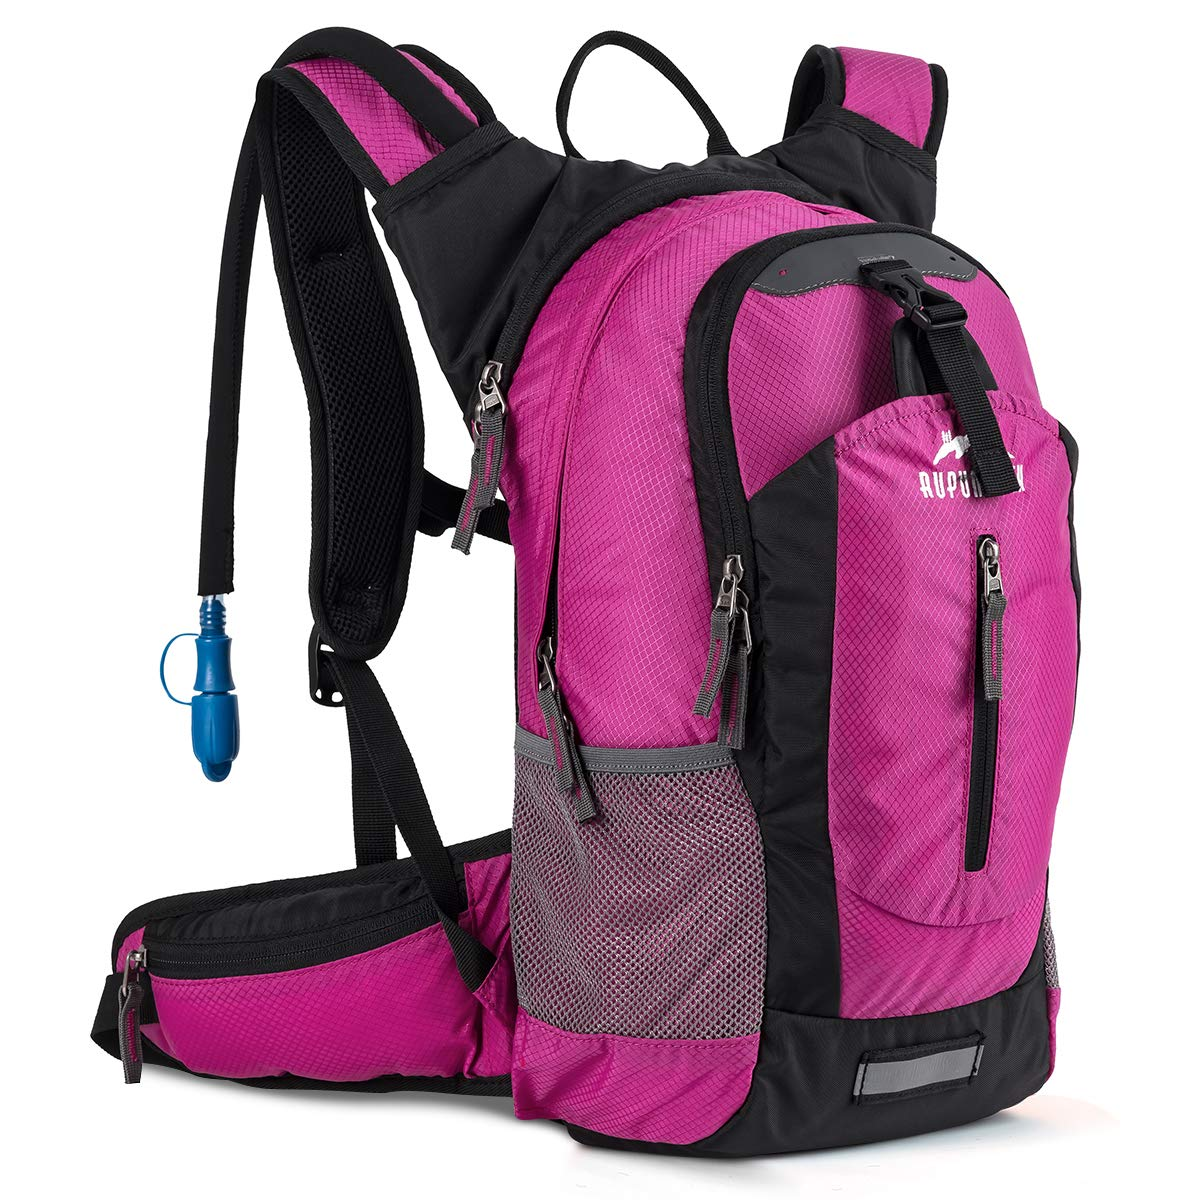 RUPUMPACK Insulated Hydration Backpack Pack with 2.5L BPA Free Bladder, Lightweight Daypack Water Backpack for Hiking Running Cycling Camping, School Commuter, Fits Men, Women, Kids, 18L Rose by RUPUMPACK